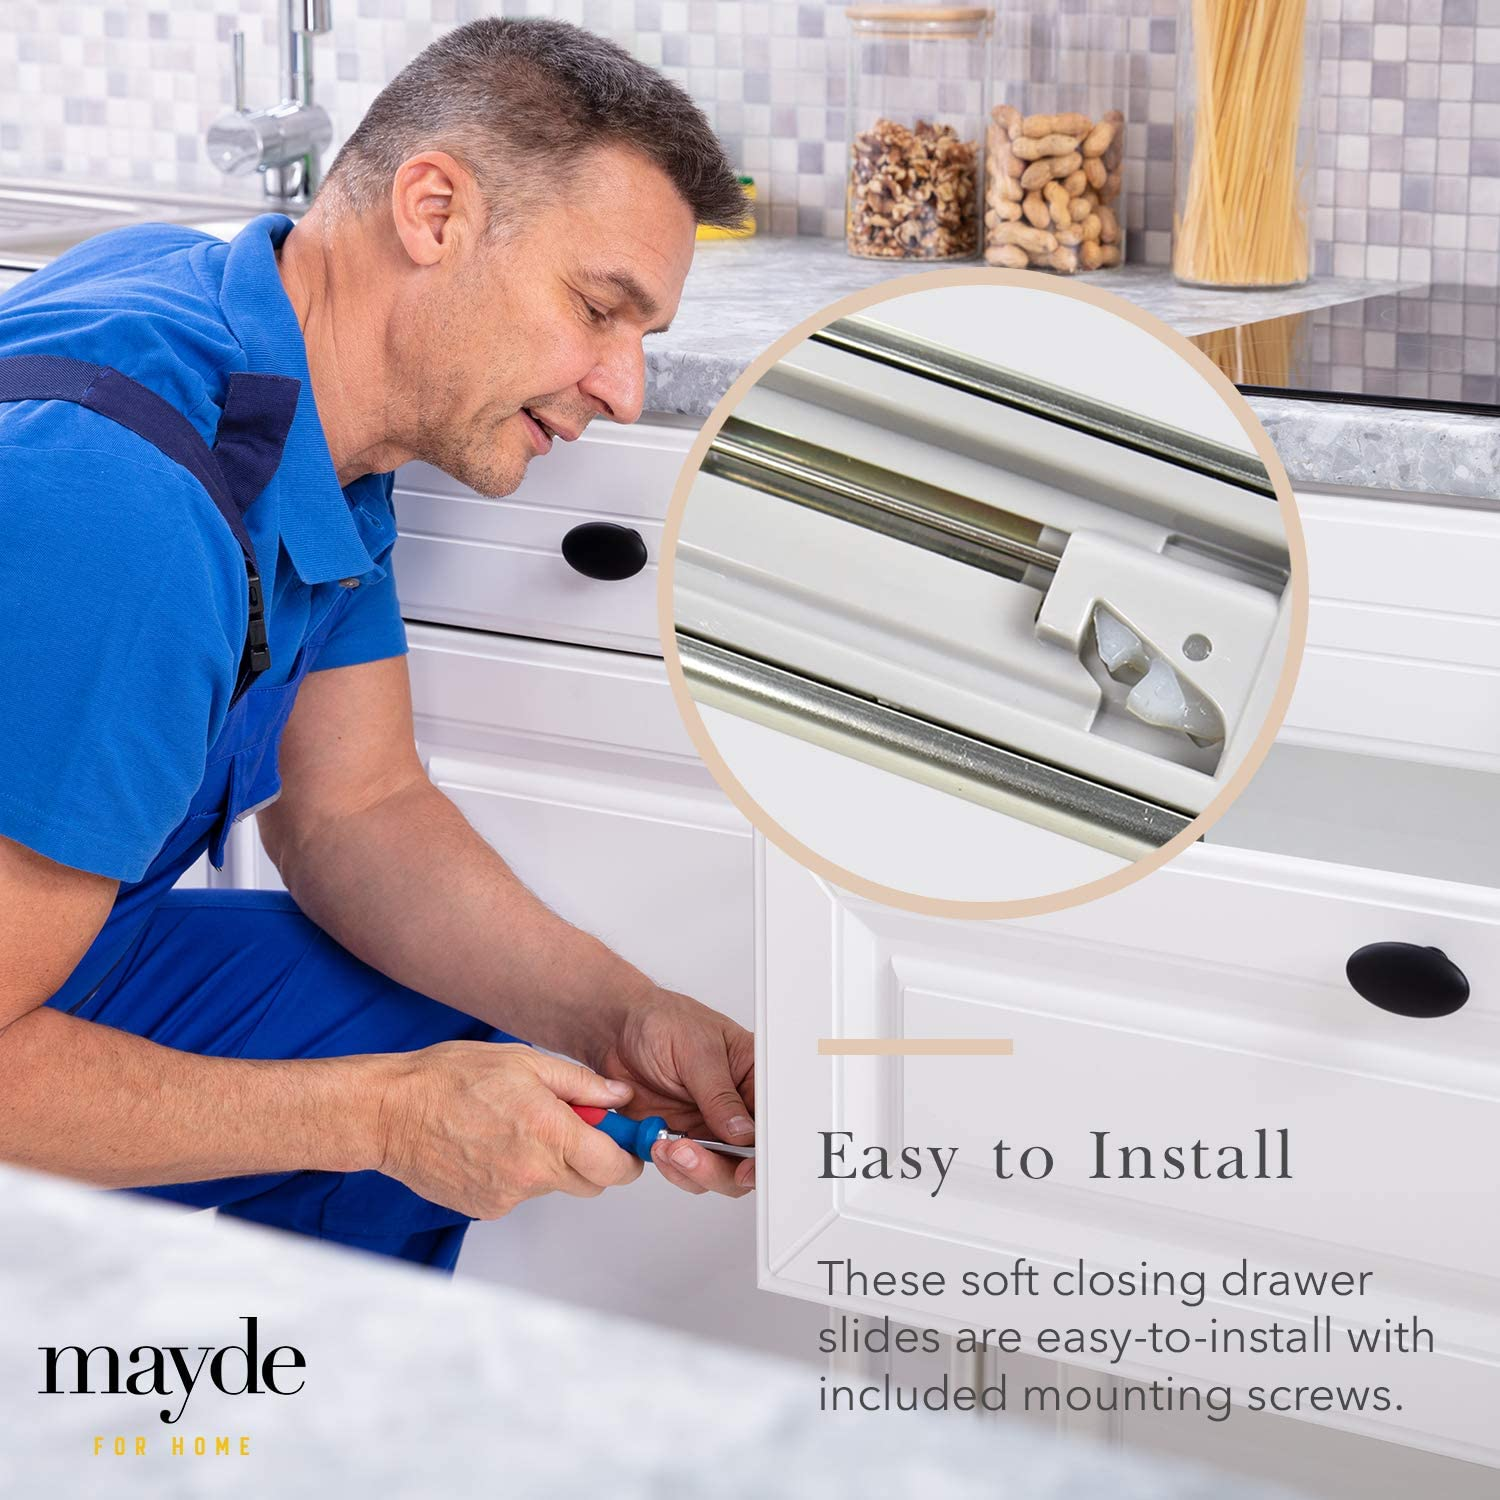 Mayde Soft Close Drawer Slides Heavy Duty Cabinet Drawer Slides 10-Pairs Dual Springs with Triple Ball Bearings 22 Inch Length 50,000 Pull Life Cycle